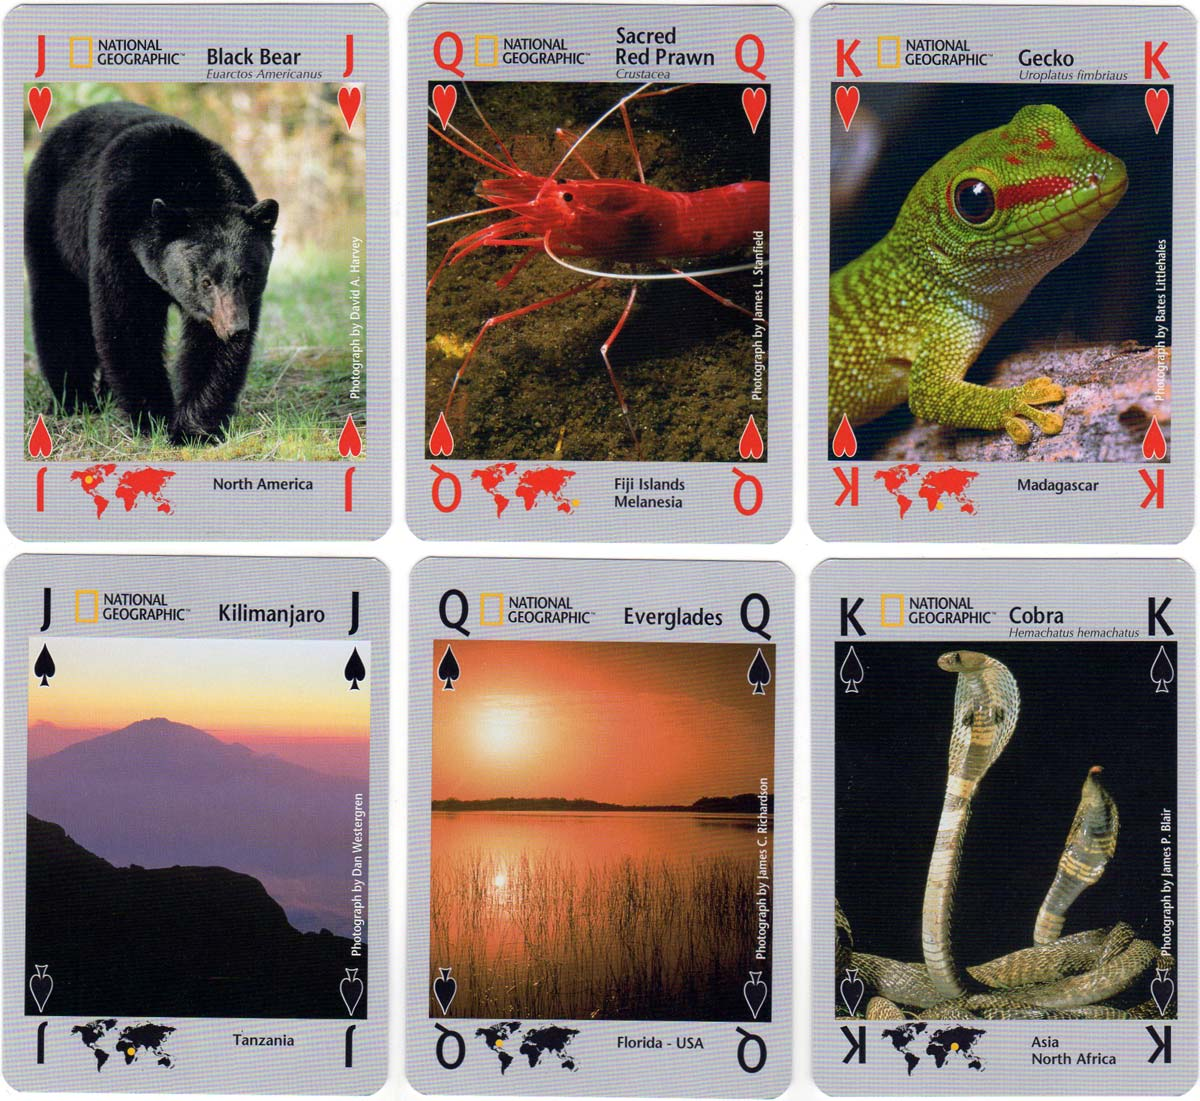 National Geographic Nature playing cards, 2006